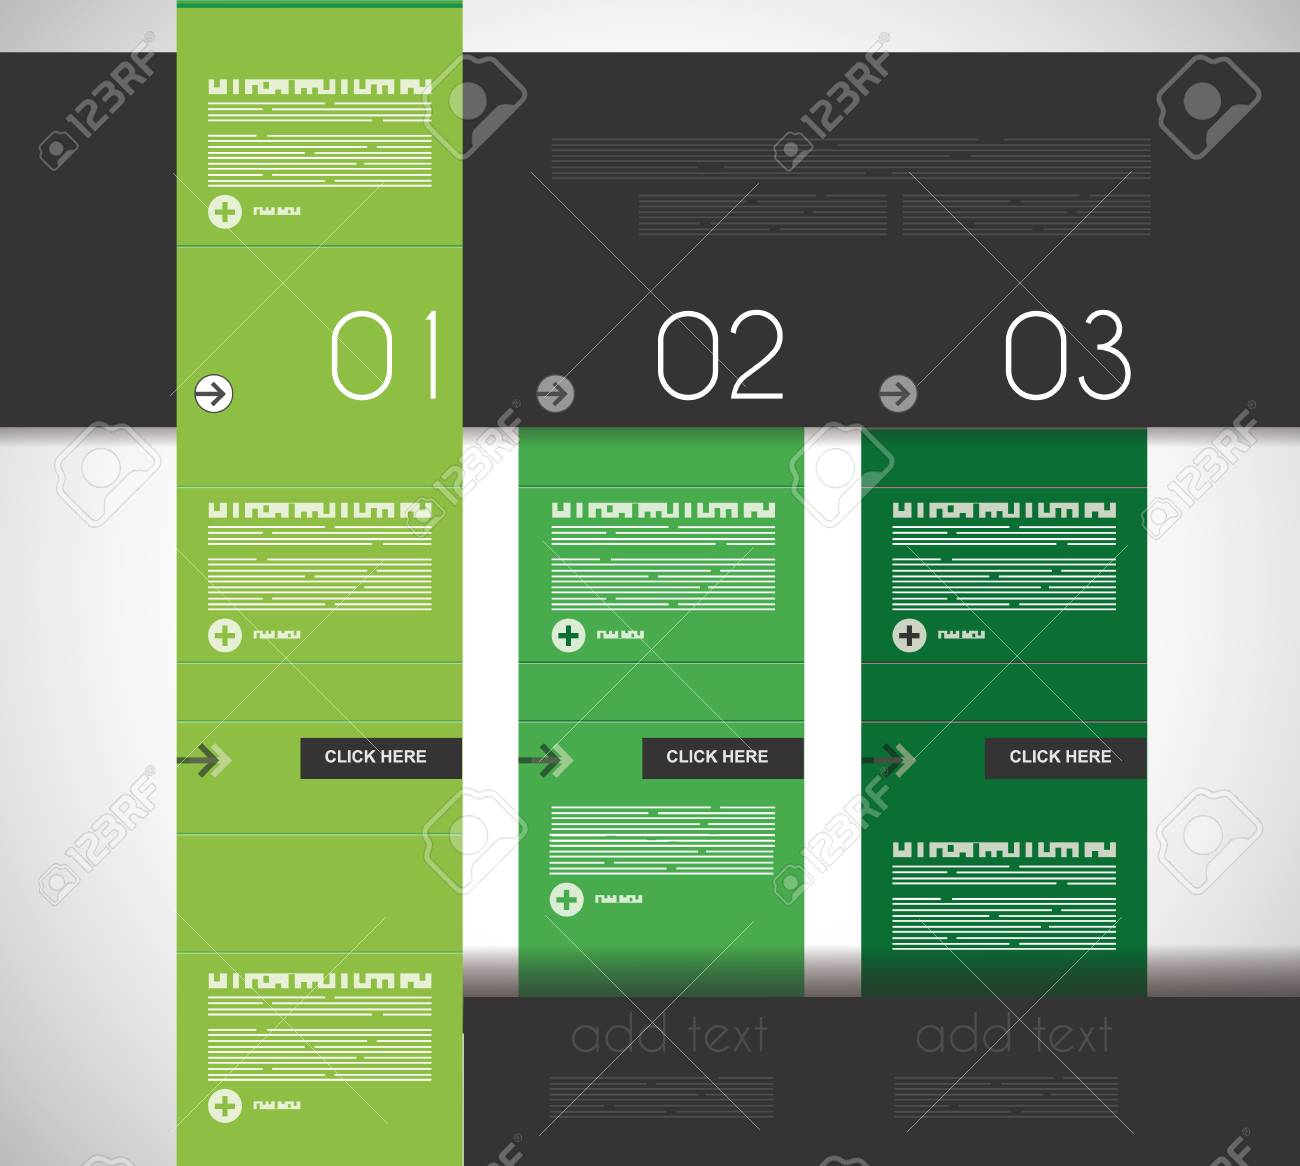 Infographic design template with flat design panels and clear uniform colours. Stock Vector - 22770707